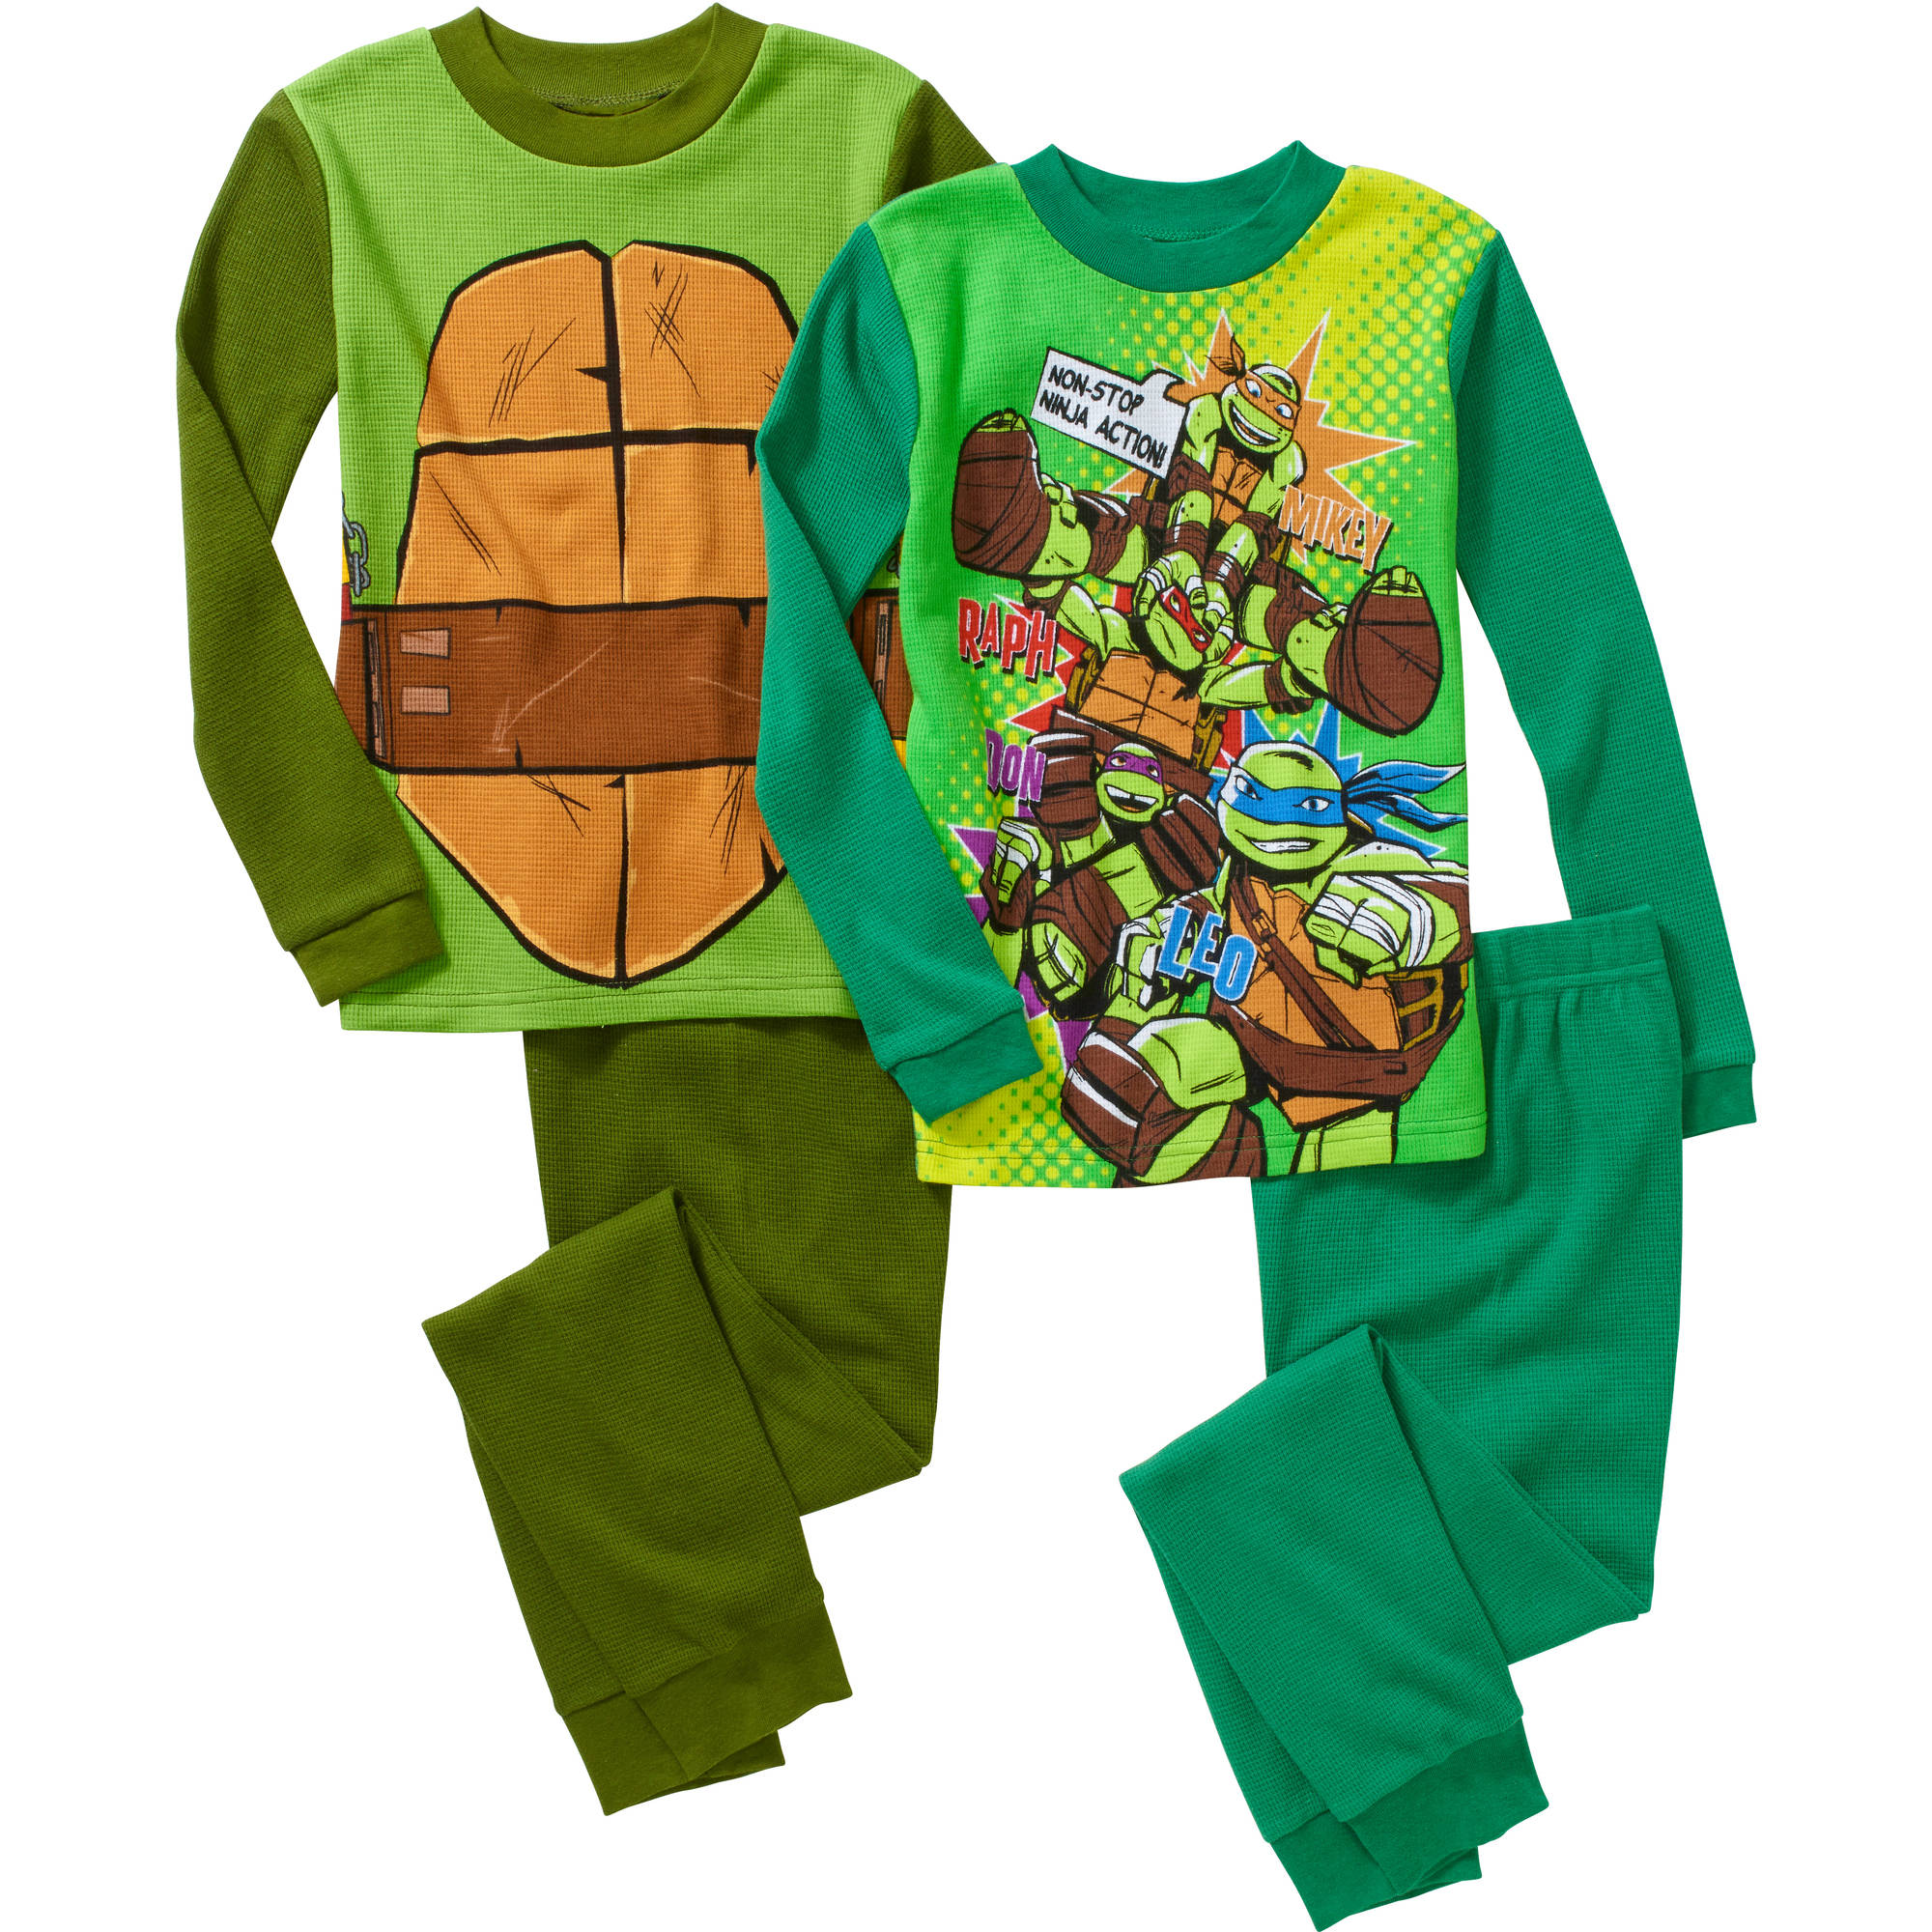 Boys' Licensed 4 Piece Thermal Set, Available in 3 Characters